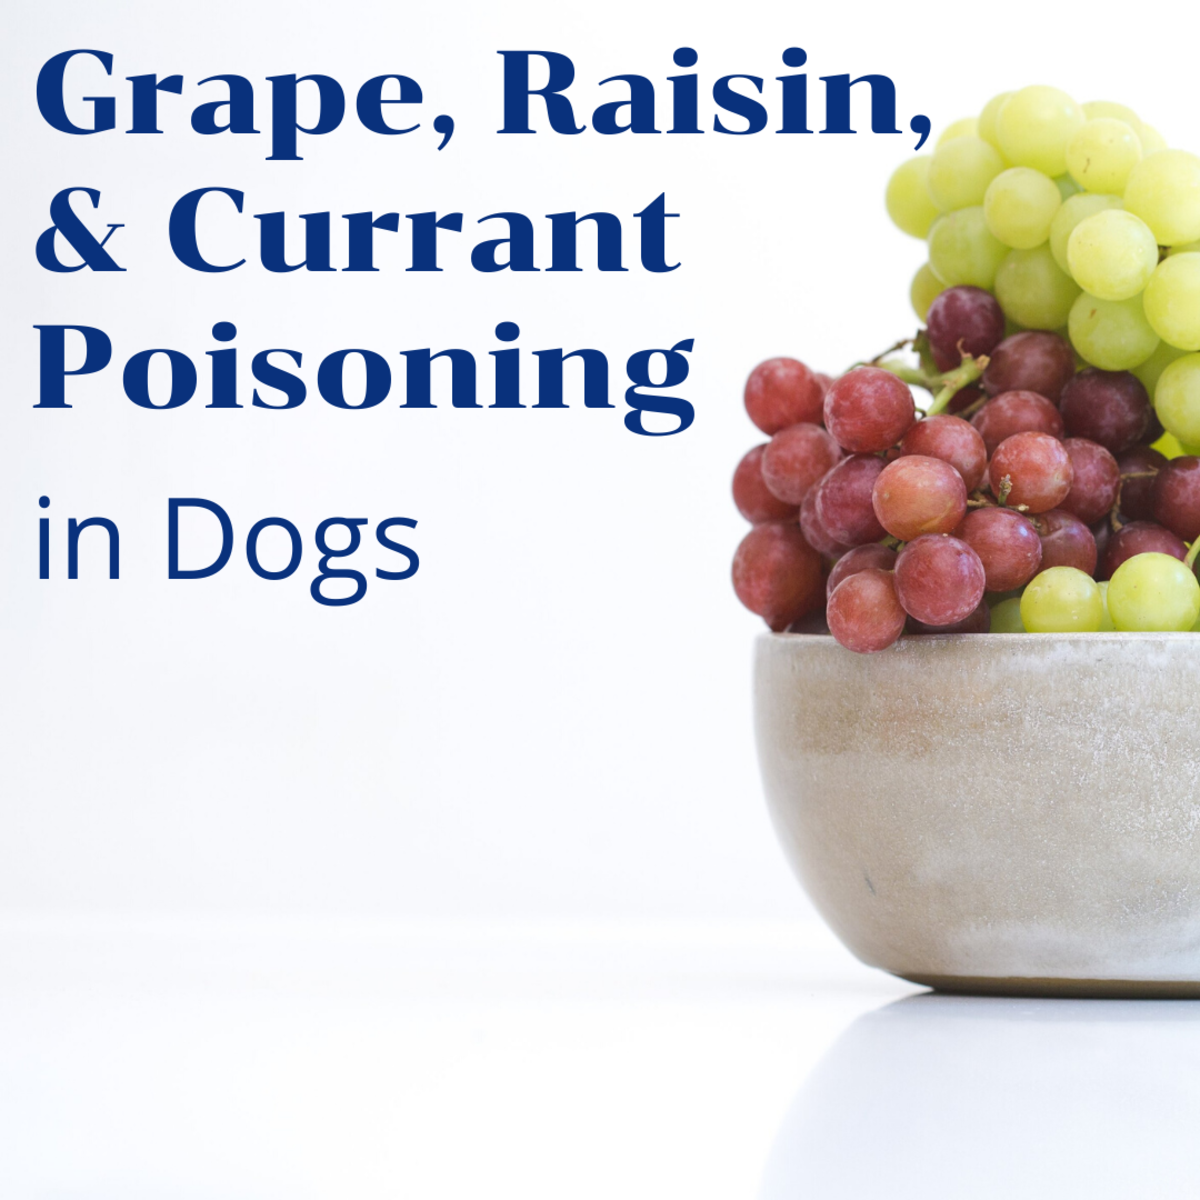 Symptoms and Signs of Kidney Failure After a Dog Eats Grapes